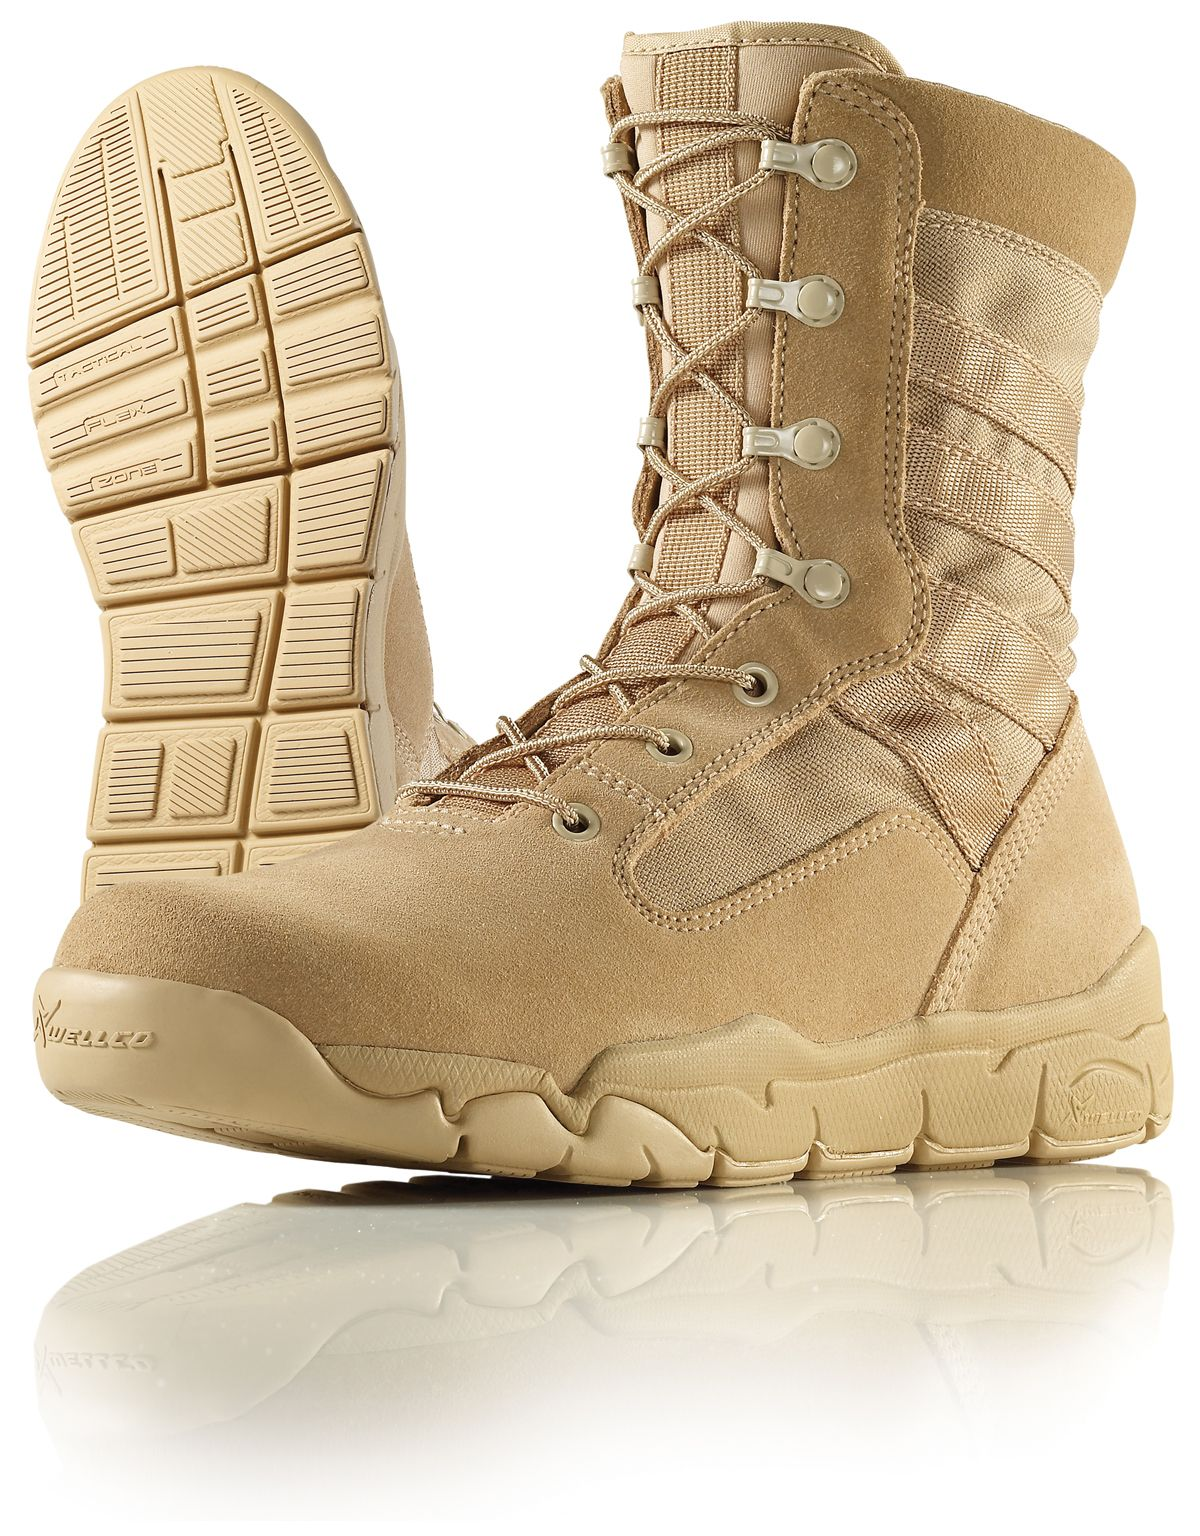 wellco-men-s-8-hot-weather-e-lite-desert-tan-combat-military-boots ...